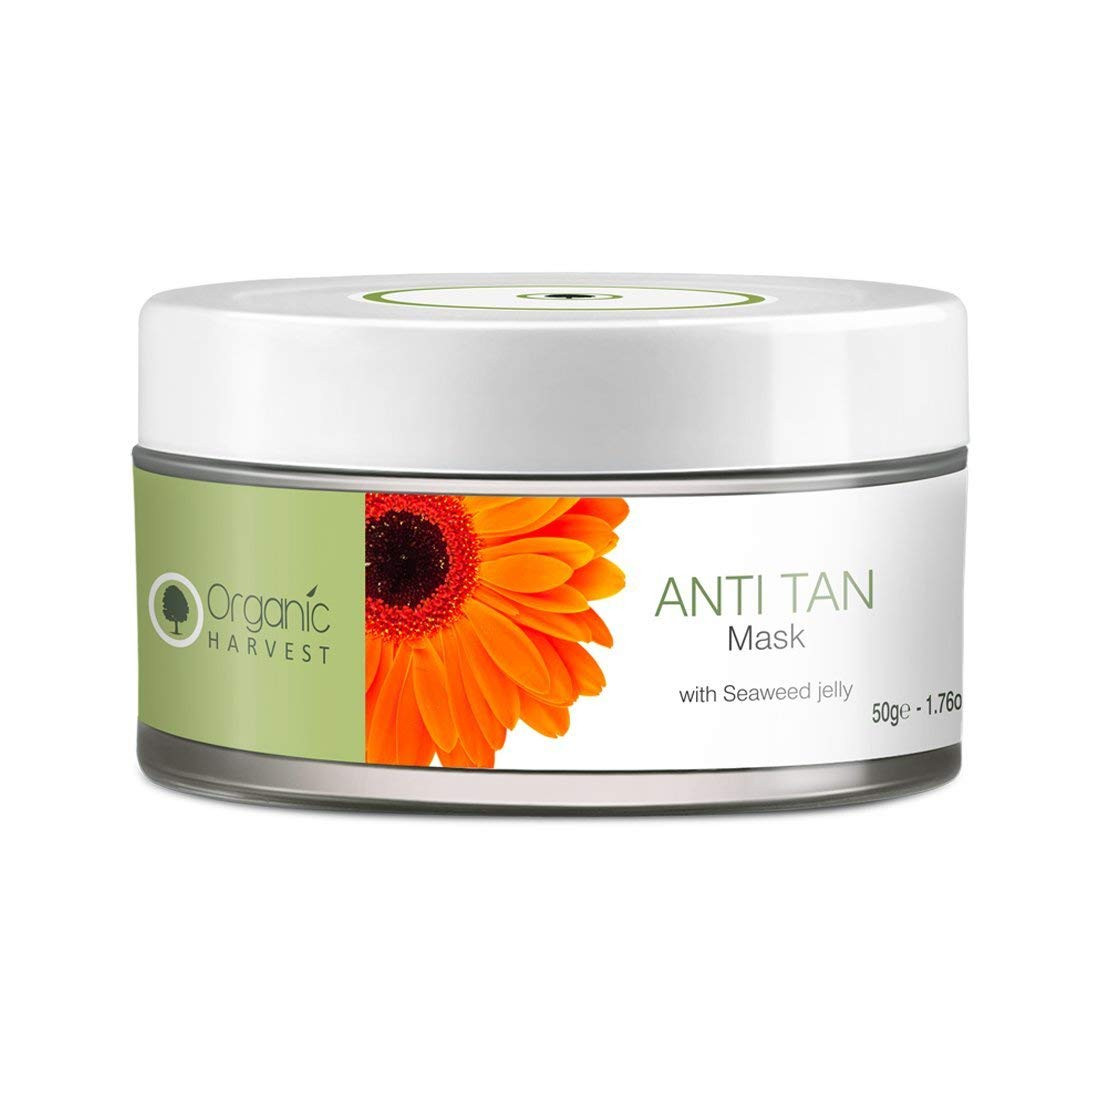 Organic Harvest Anti Tan Mask,50g